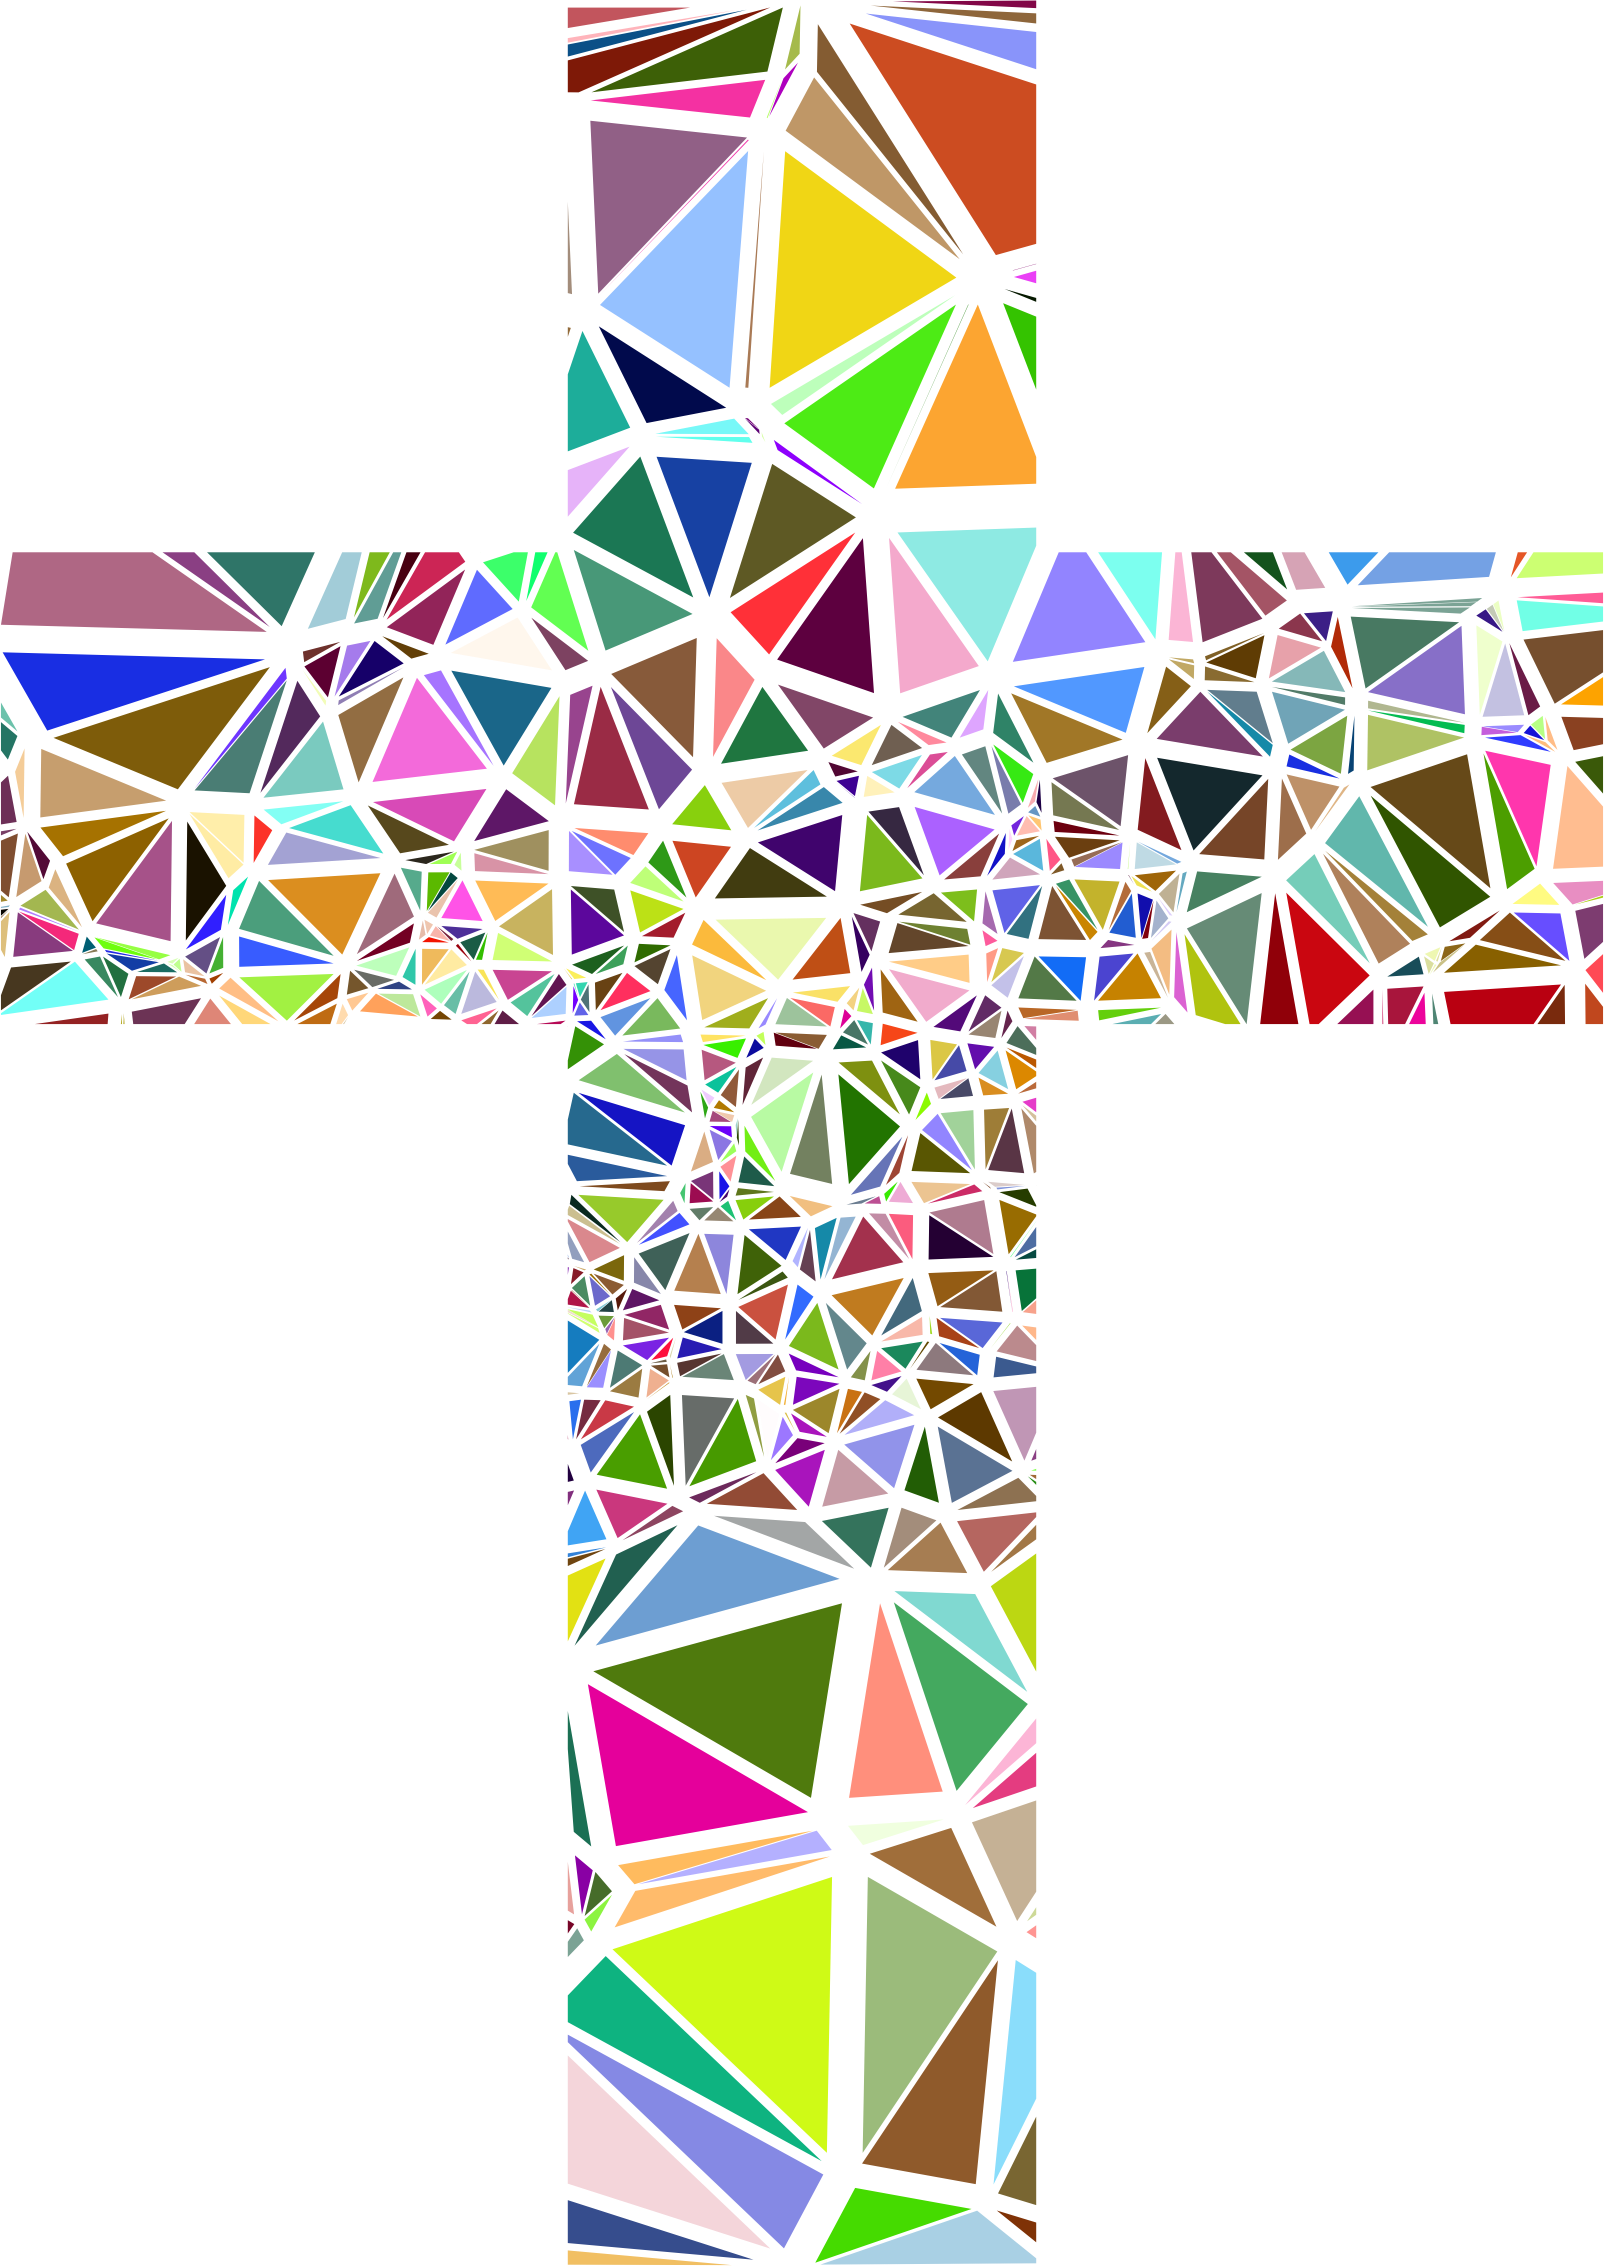 Stained glass cross clipart freeuse Clipart - Low Poly Stained Glass Cross freeuse